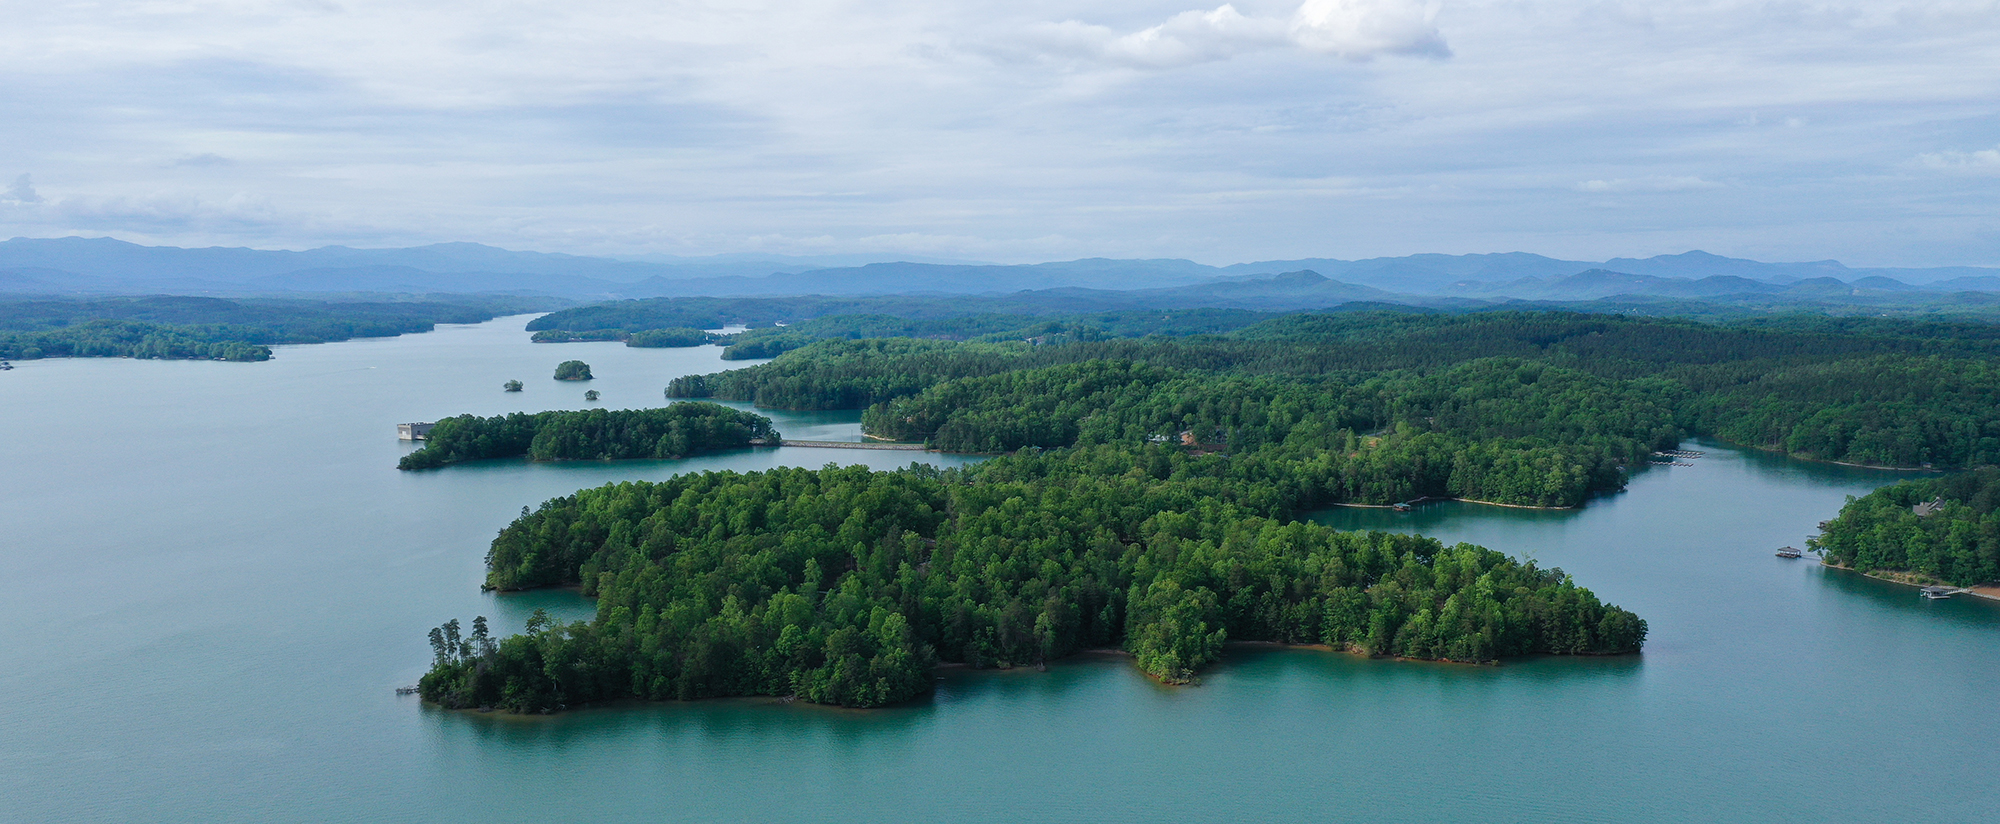 The Landing at Keowee Springs - Aerial View